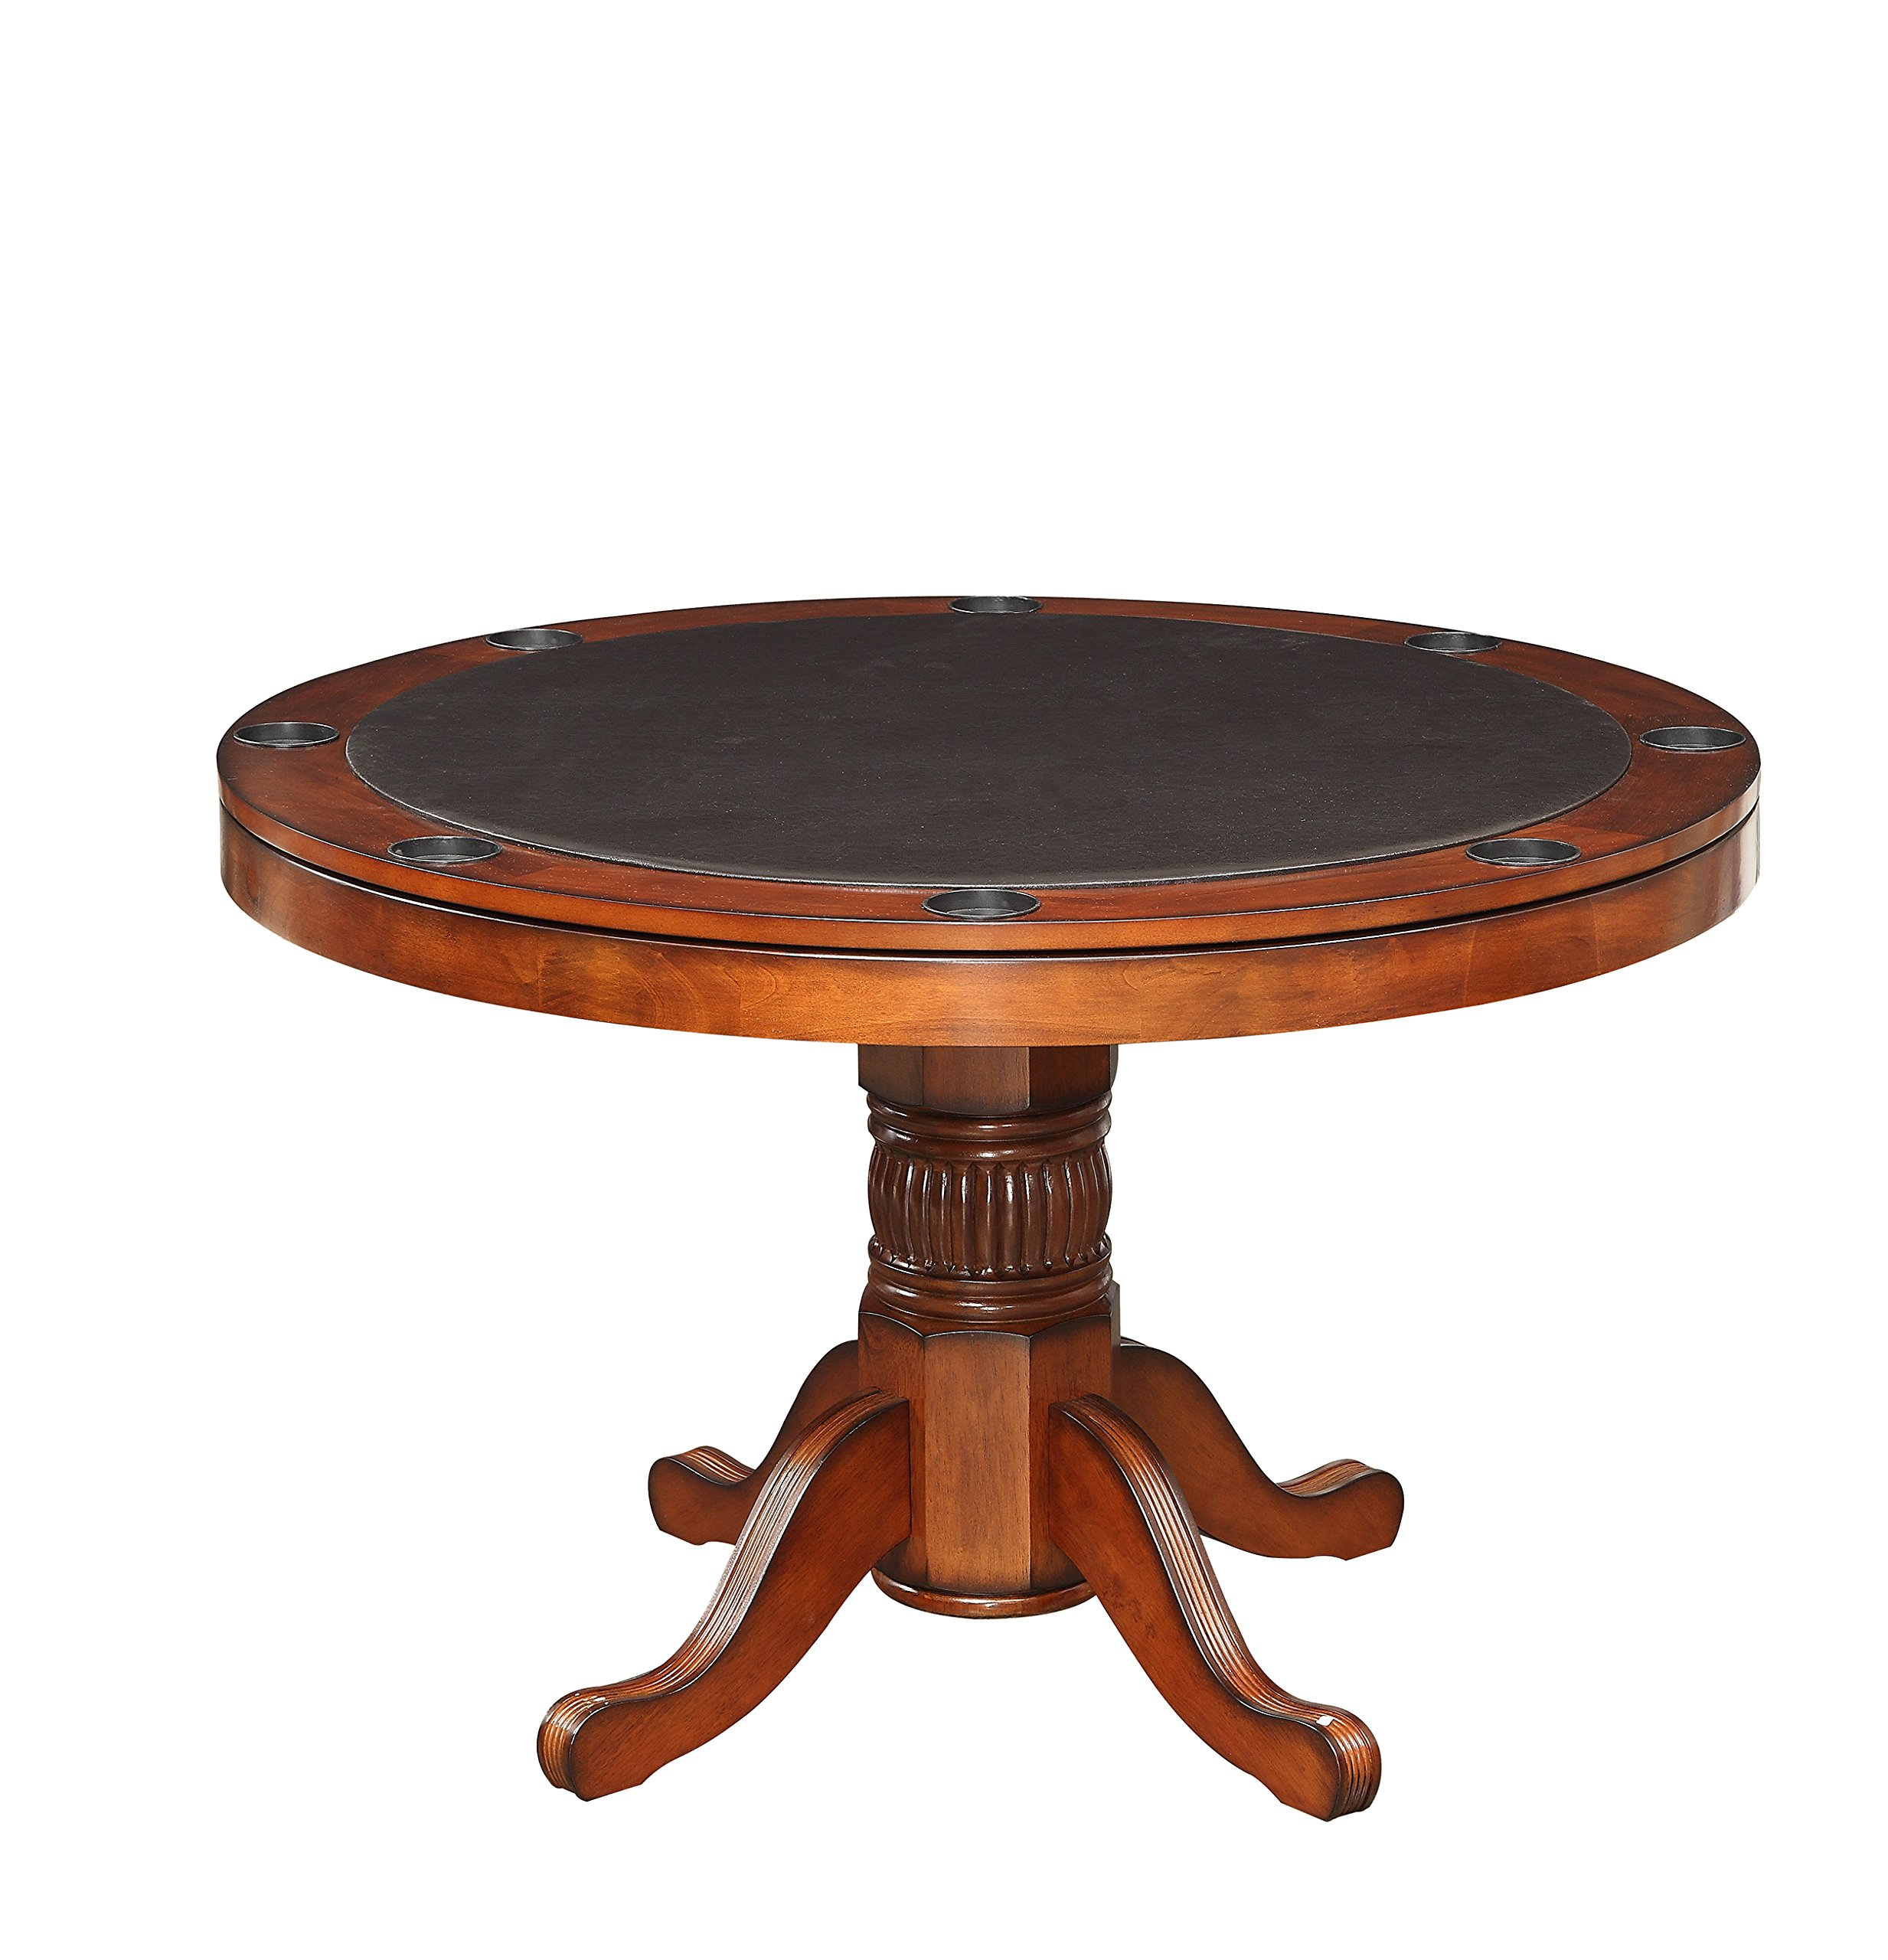 HOMES: Inside + Out Thatcher Contemporary Interchangeable Round Game Table, Chesnut by HOMES: Inside + Out